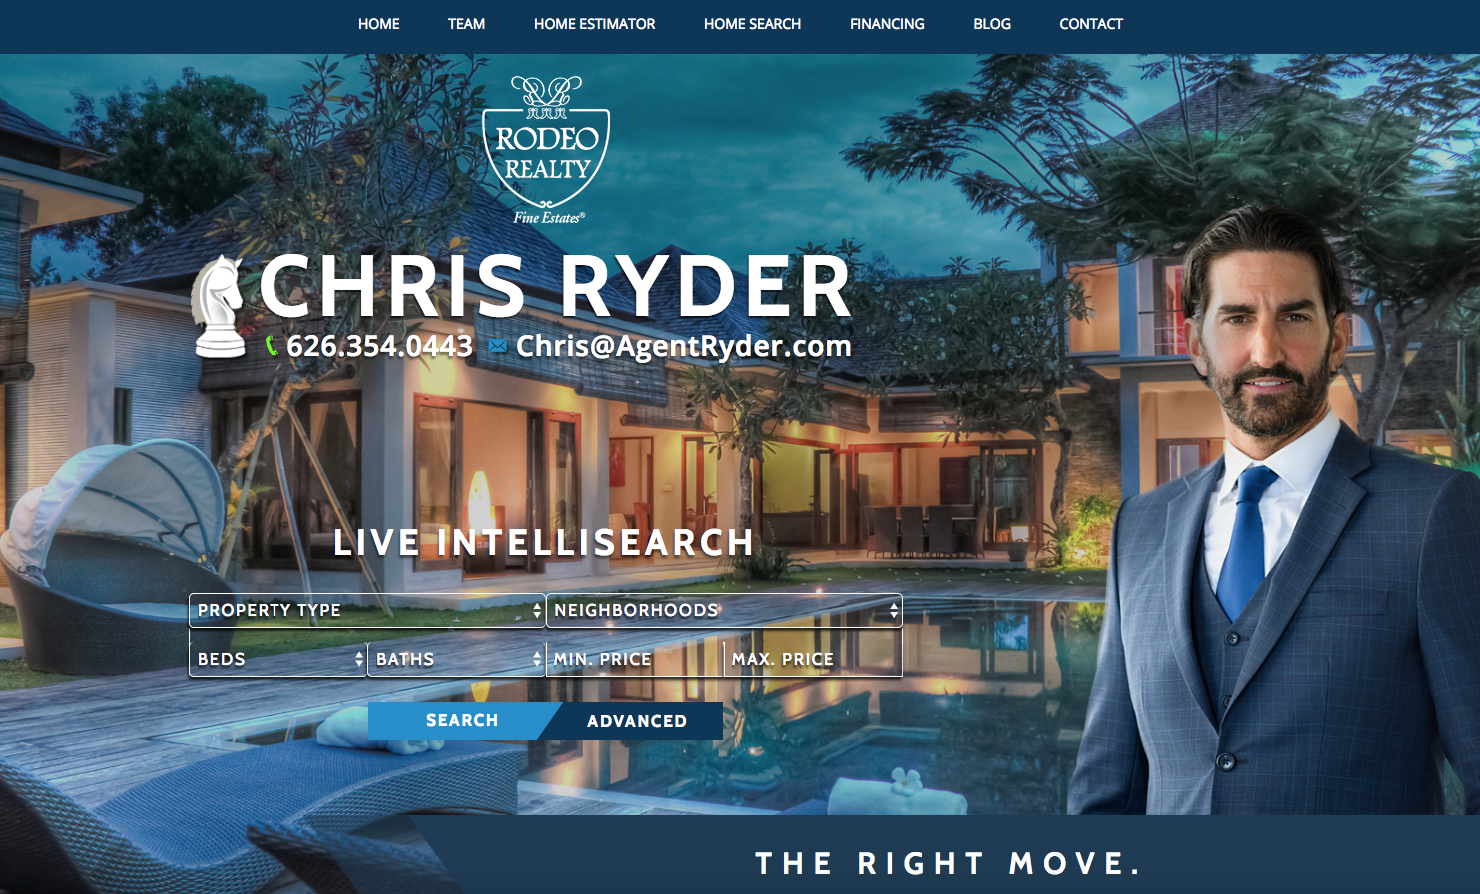 an example of a great realtor website